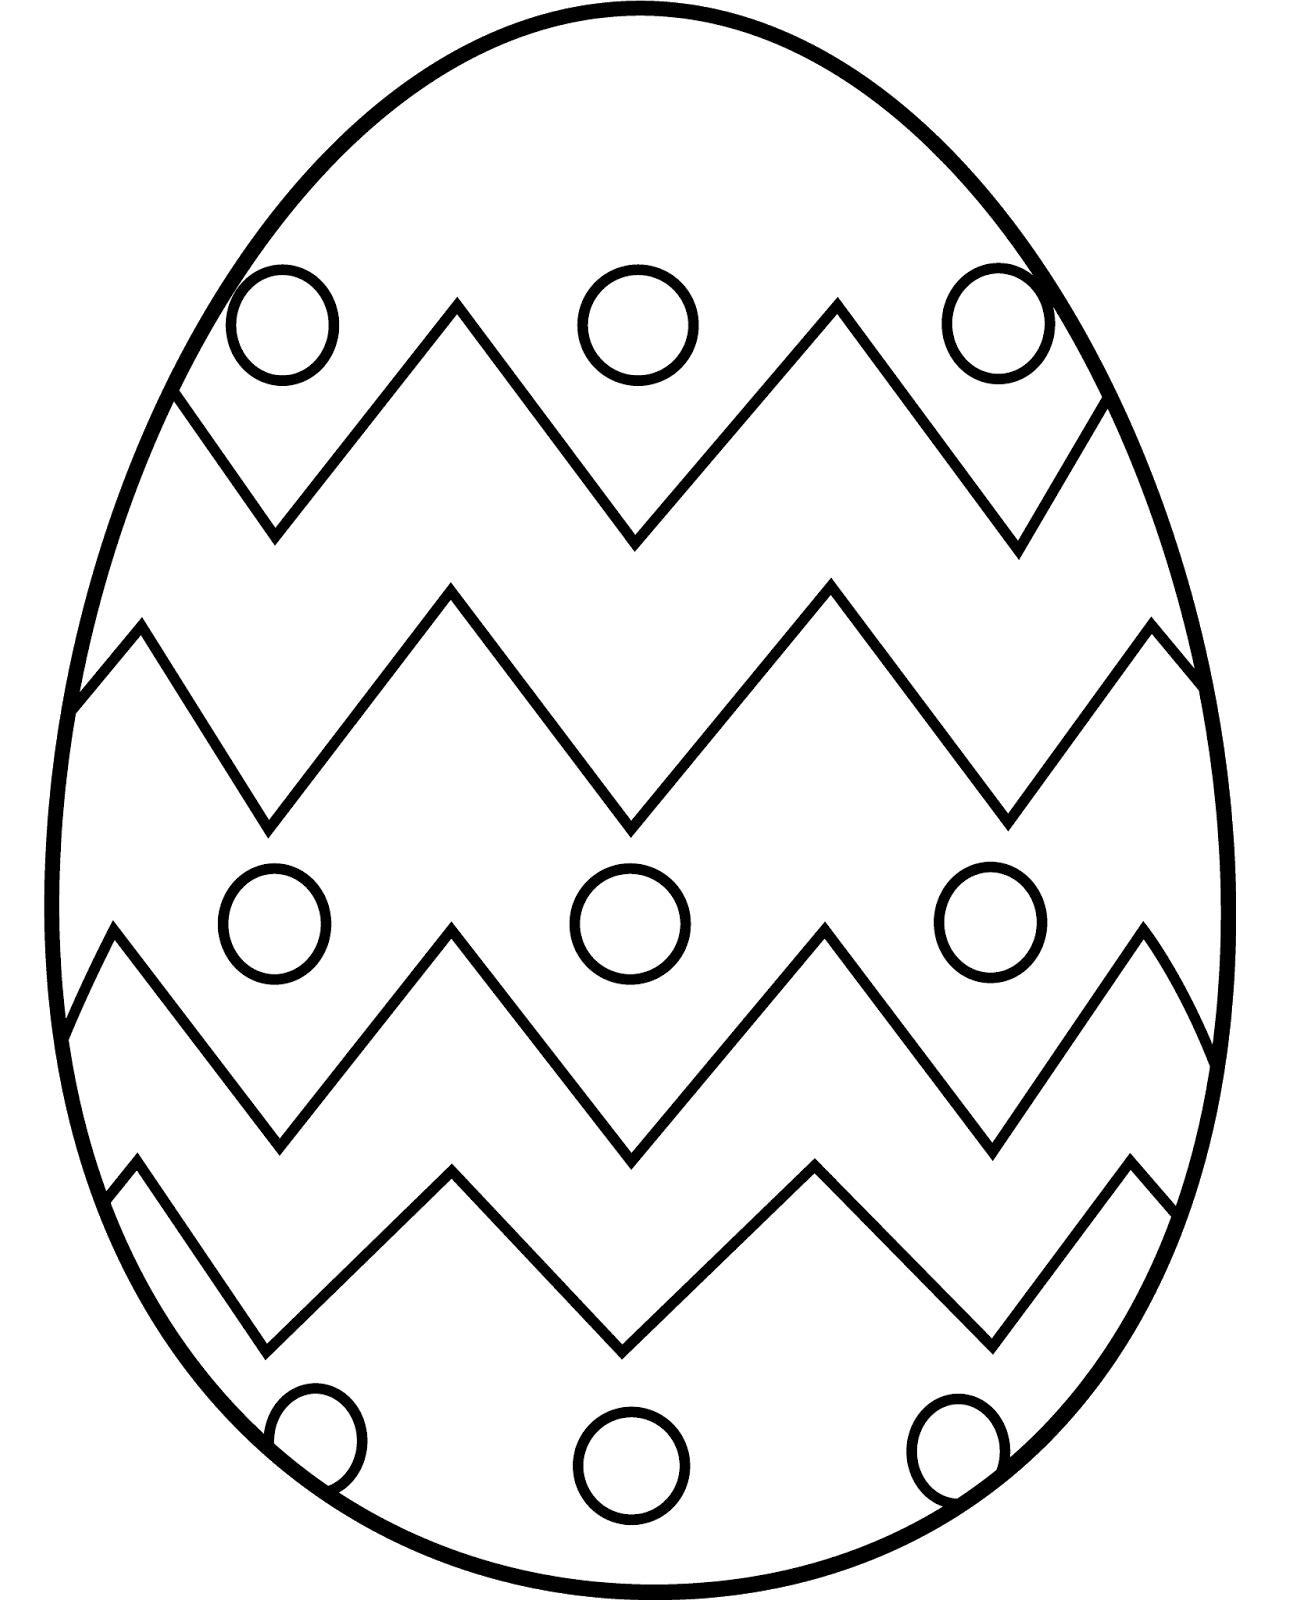 Easter Colouring Pages   Easter coloring sheets, Easter coloring ...